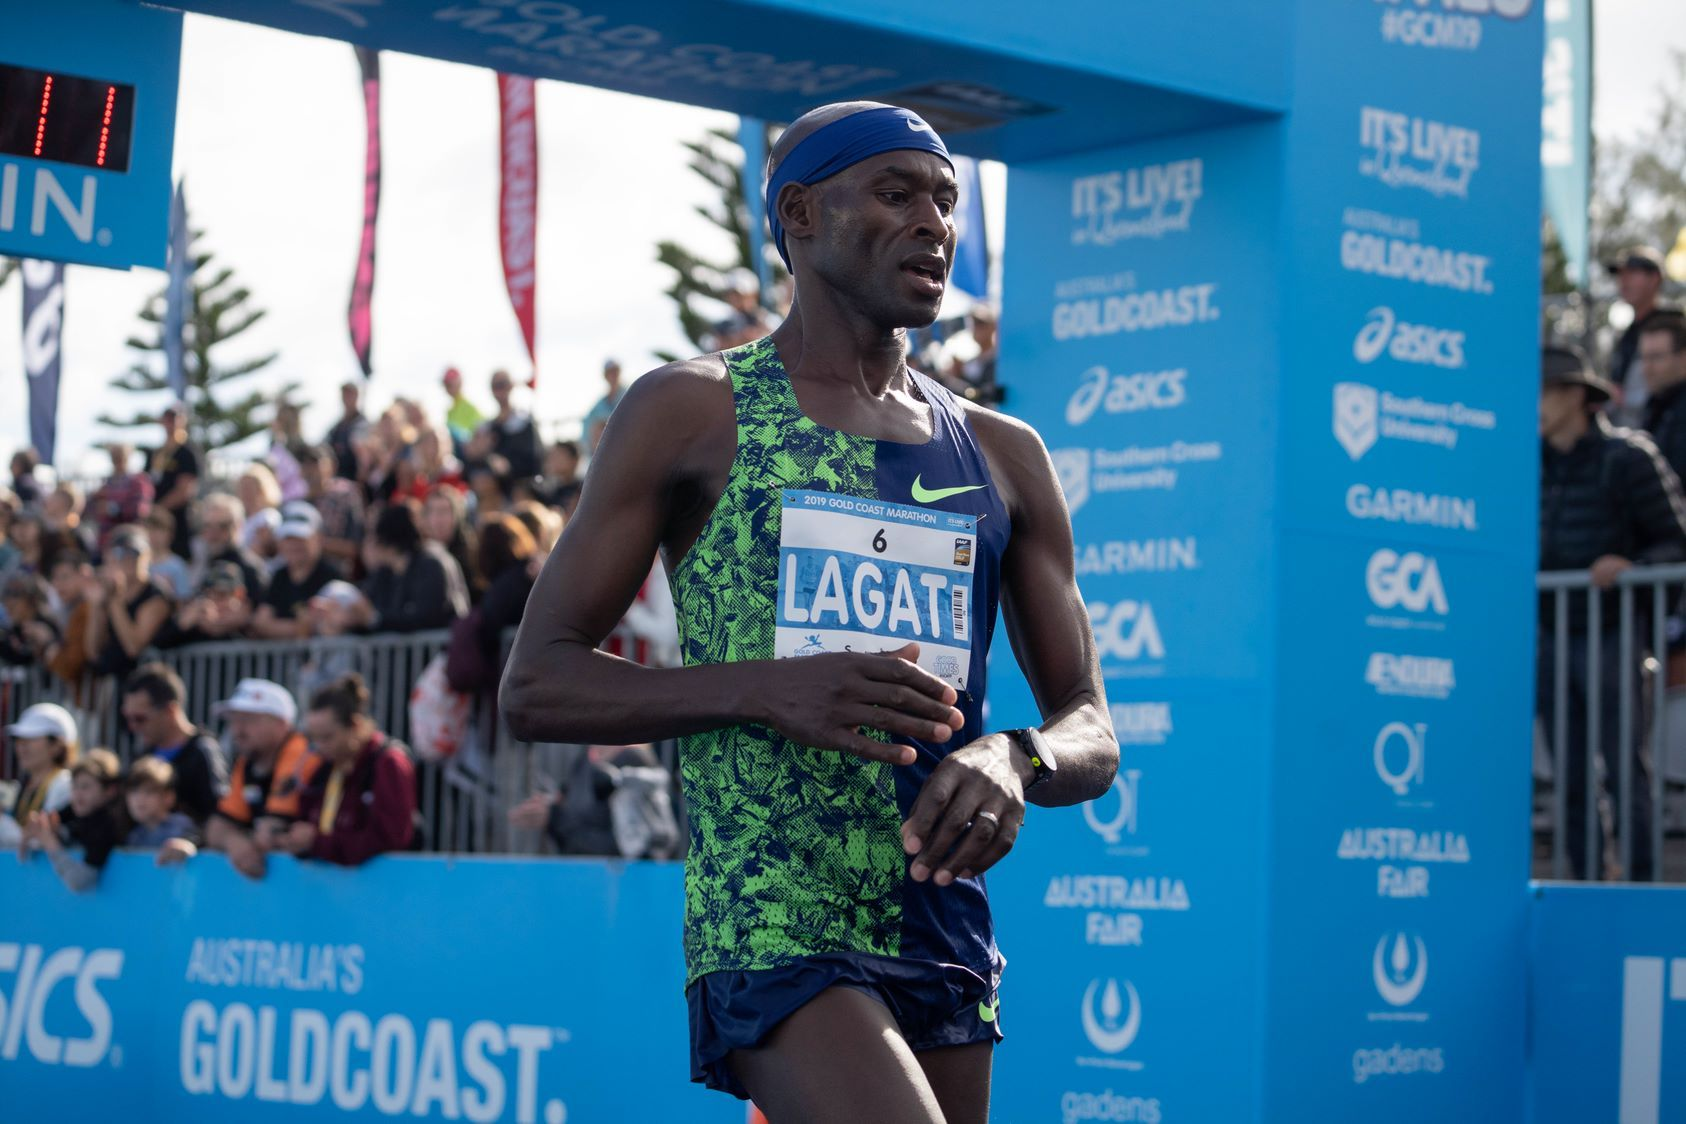 Bernard Lagat: All in for the Olympic Marathon Trials